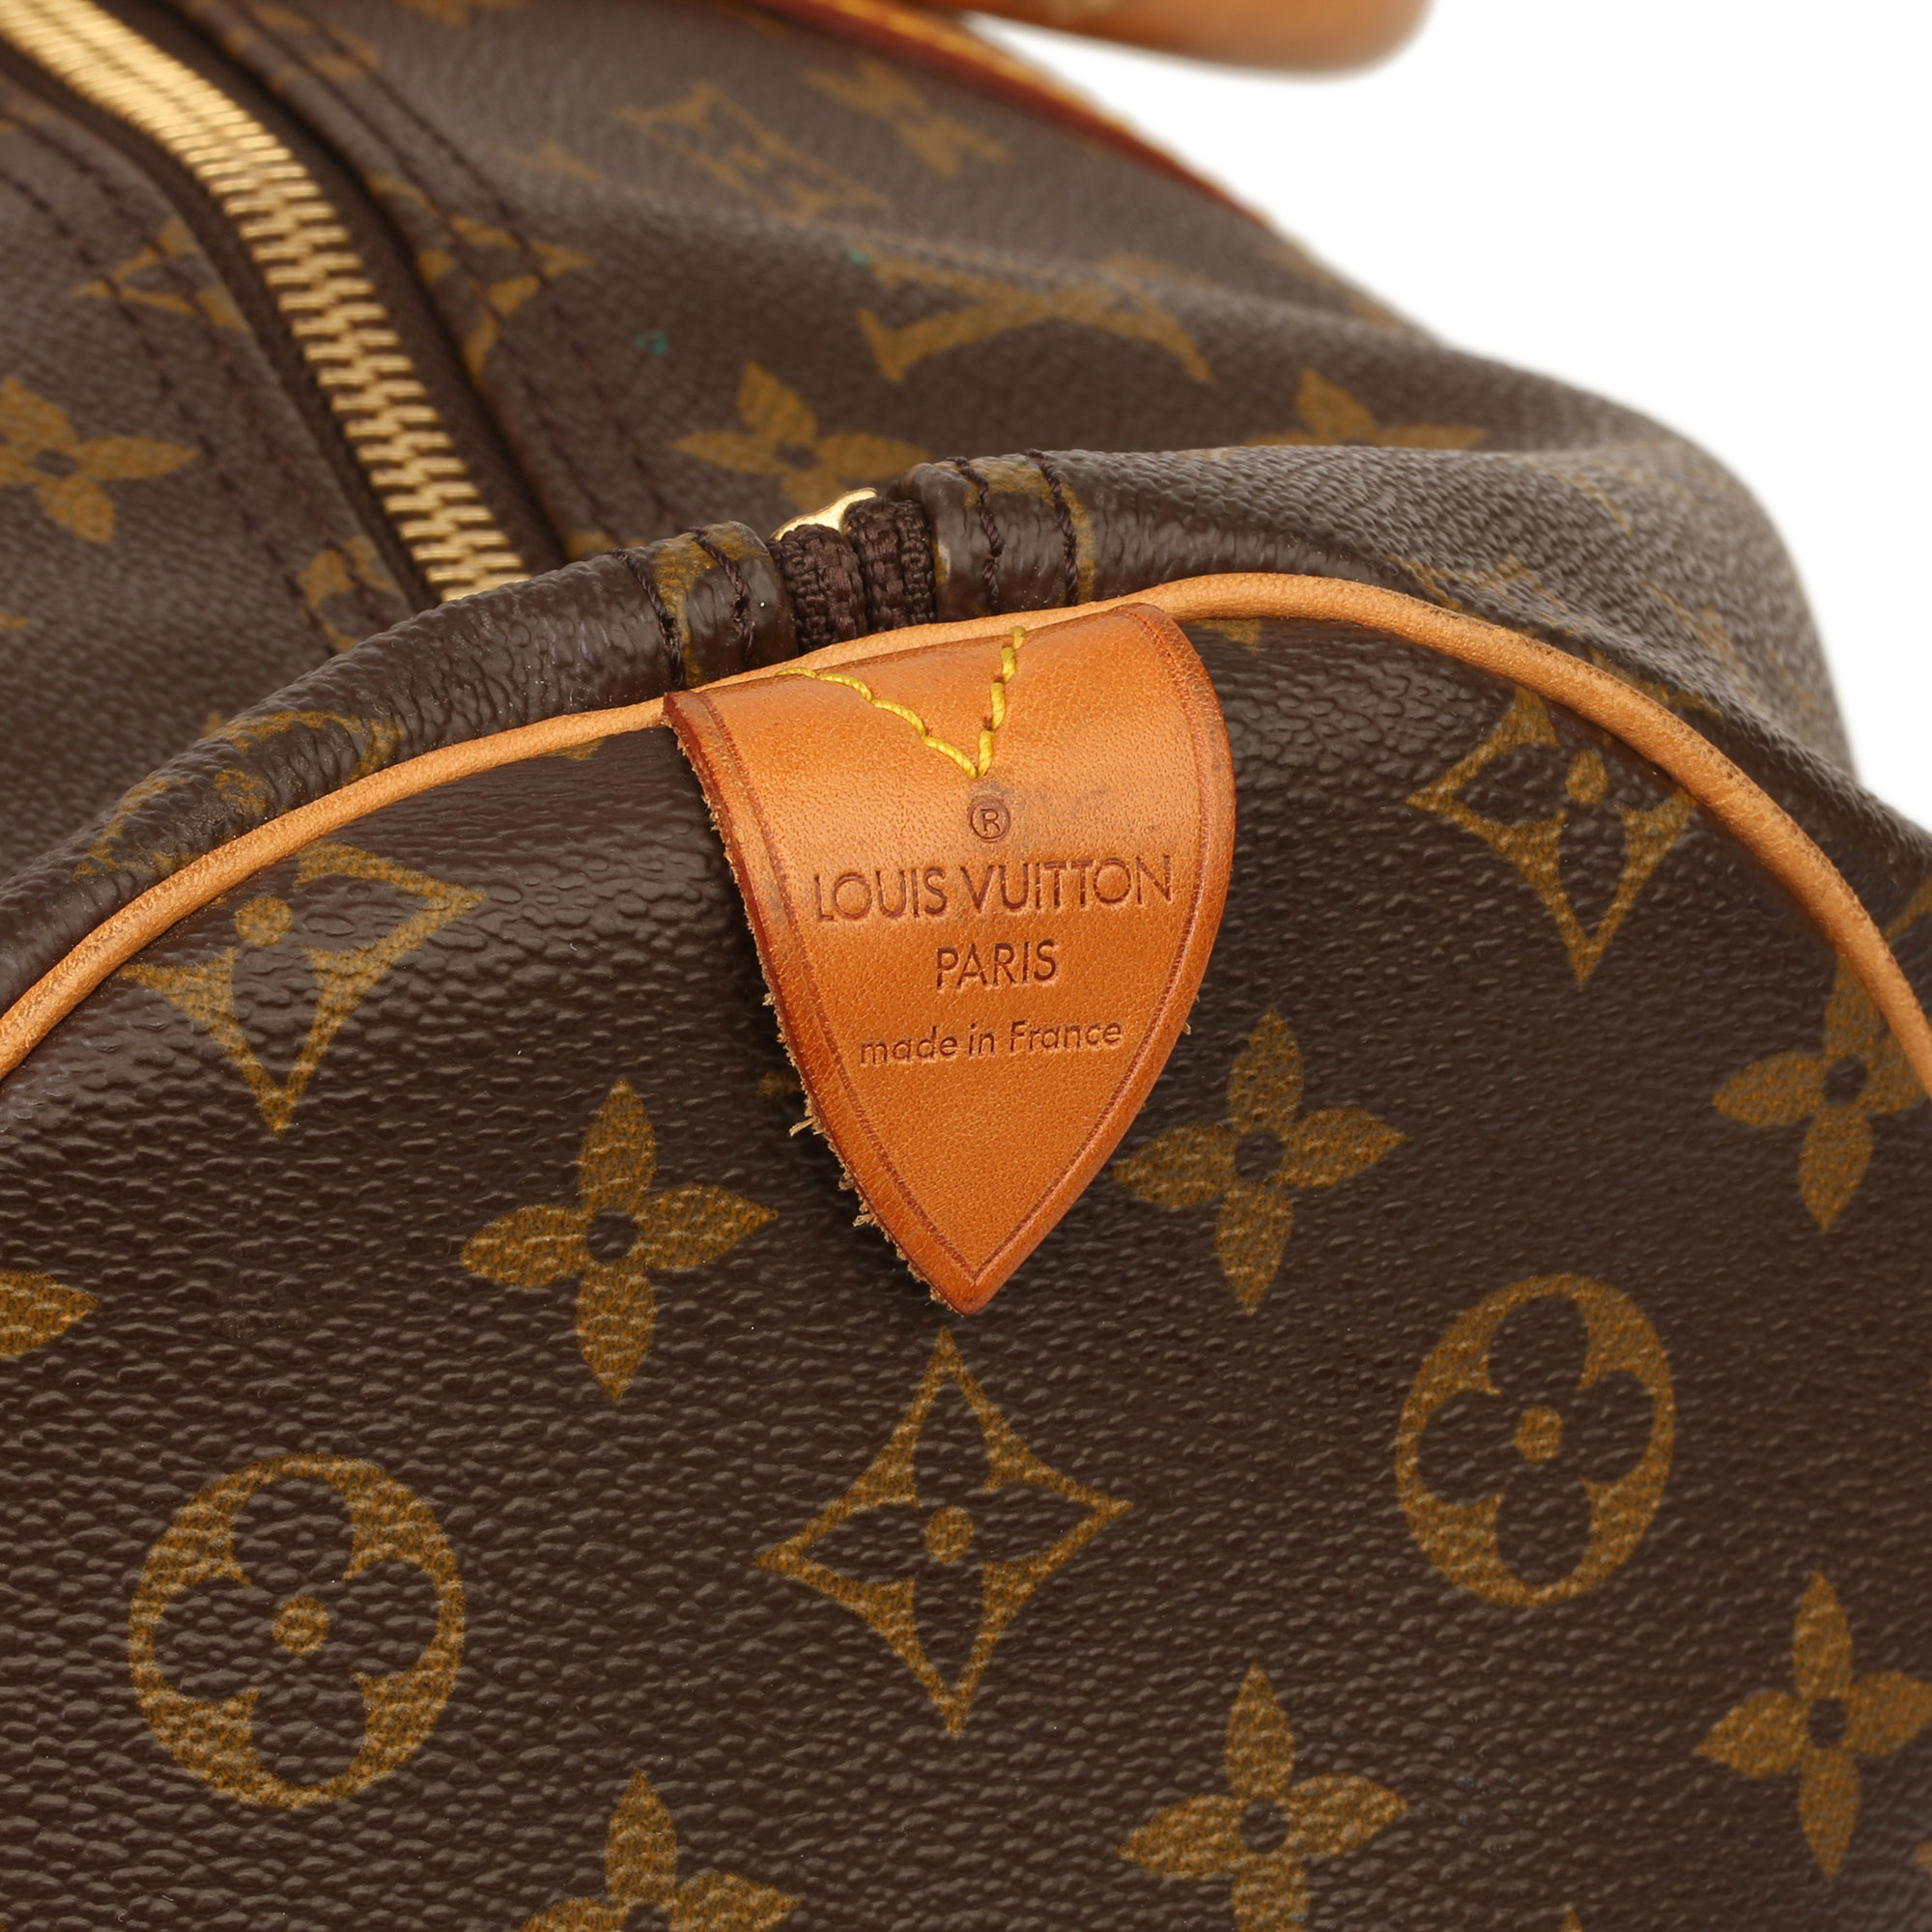 Louis Vuitton Brown Monogram Coated Canvas & Vachetta Leather Vintage Keepall 55 - Image 8 of 14